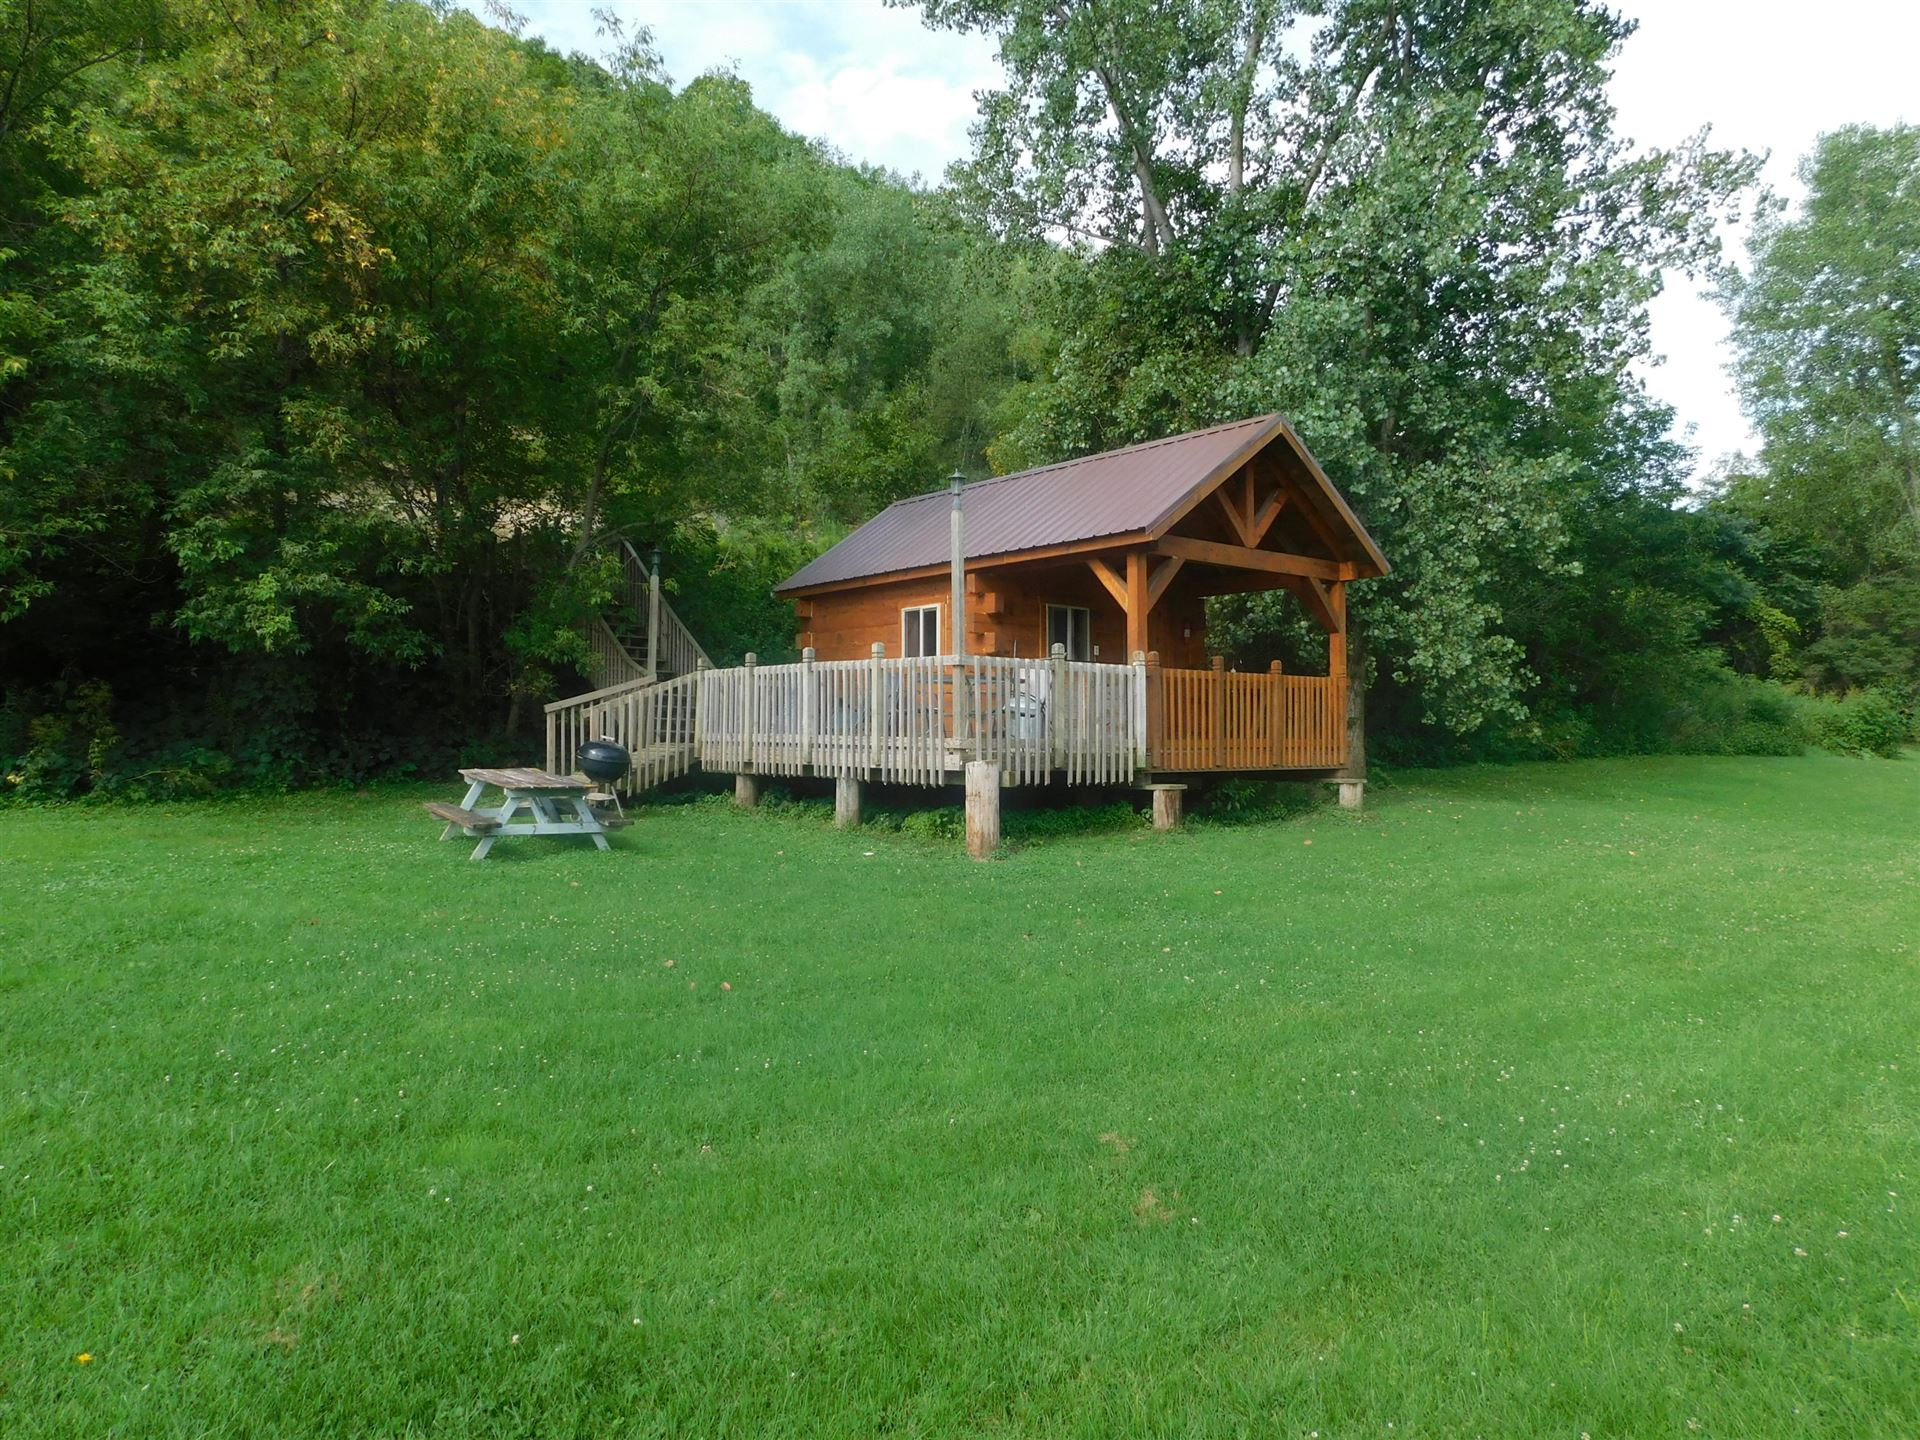 S857 State Road 61, Readstown, WI 54652 - MLS#: 1663938